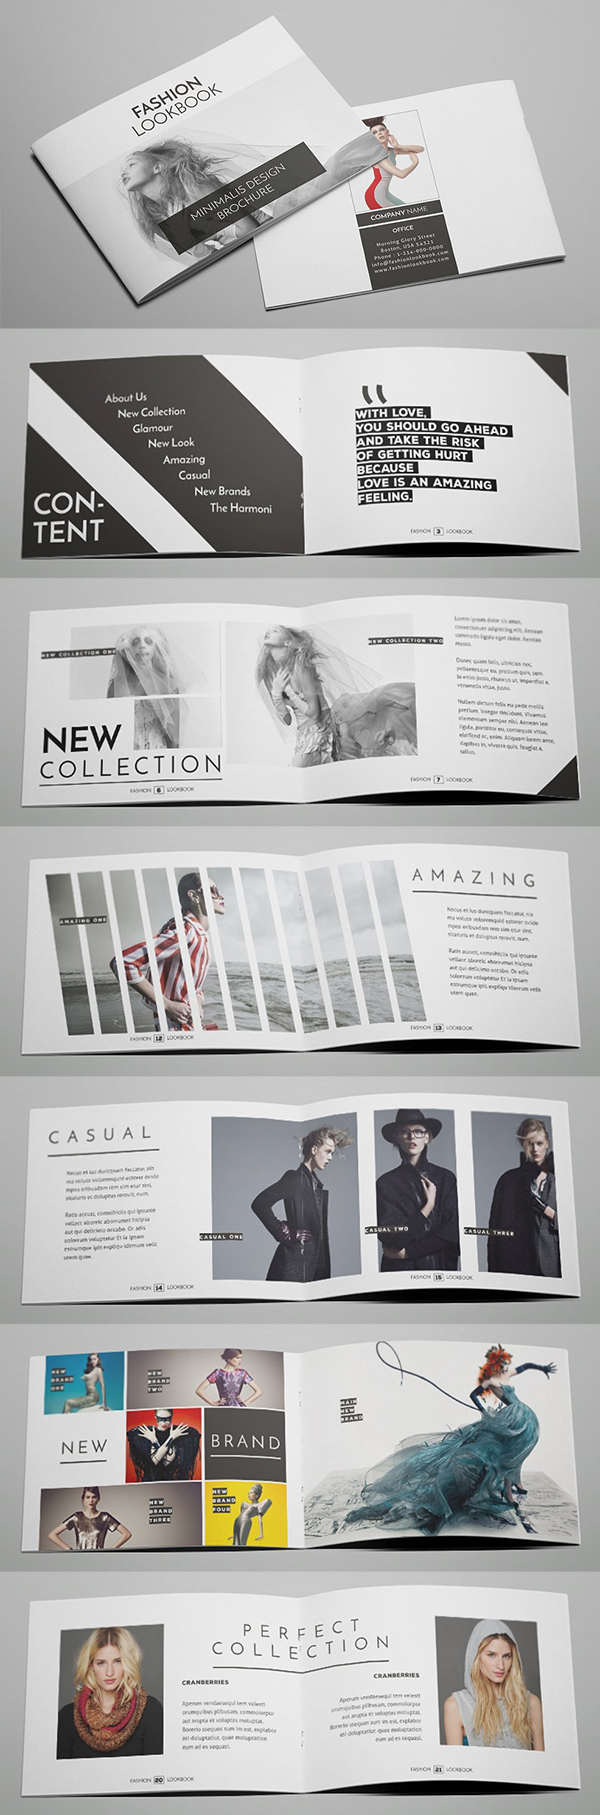 Fashion Brochure / Catalog Design Template